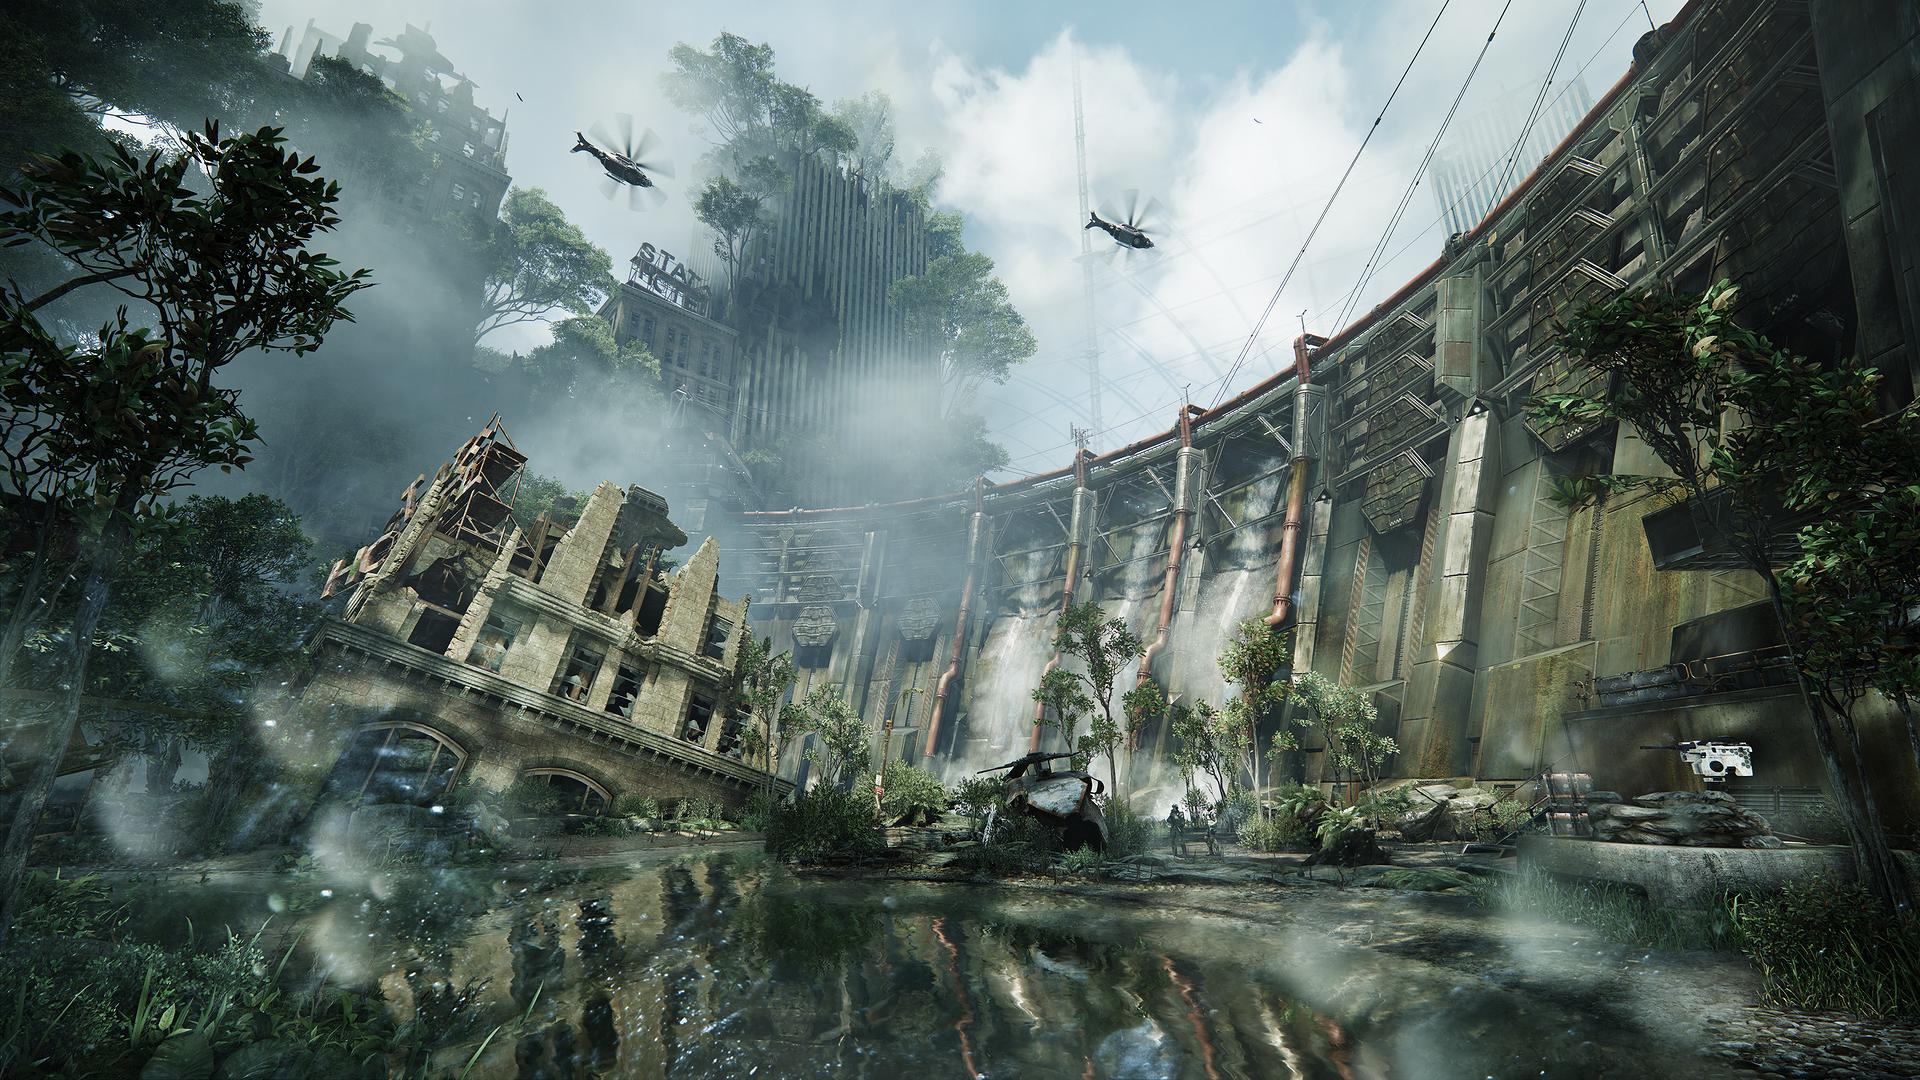 crysis 3 pictures 34111